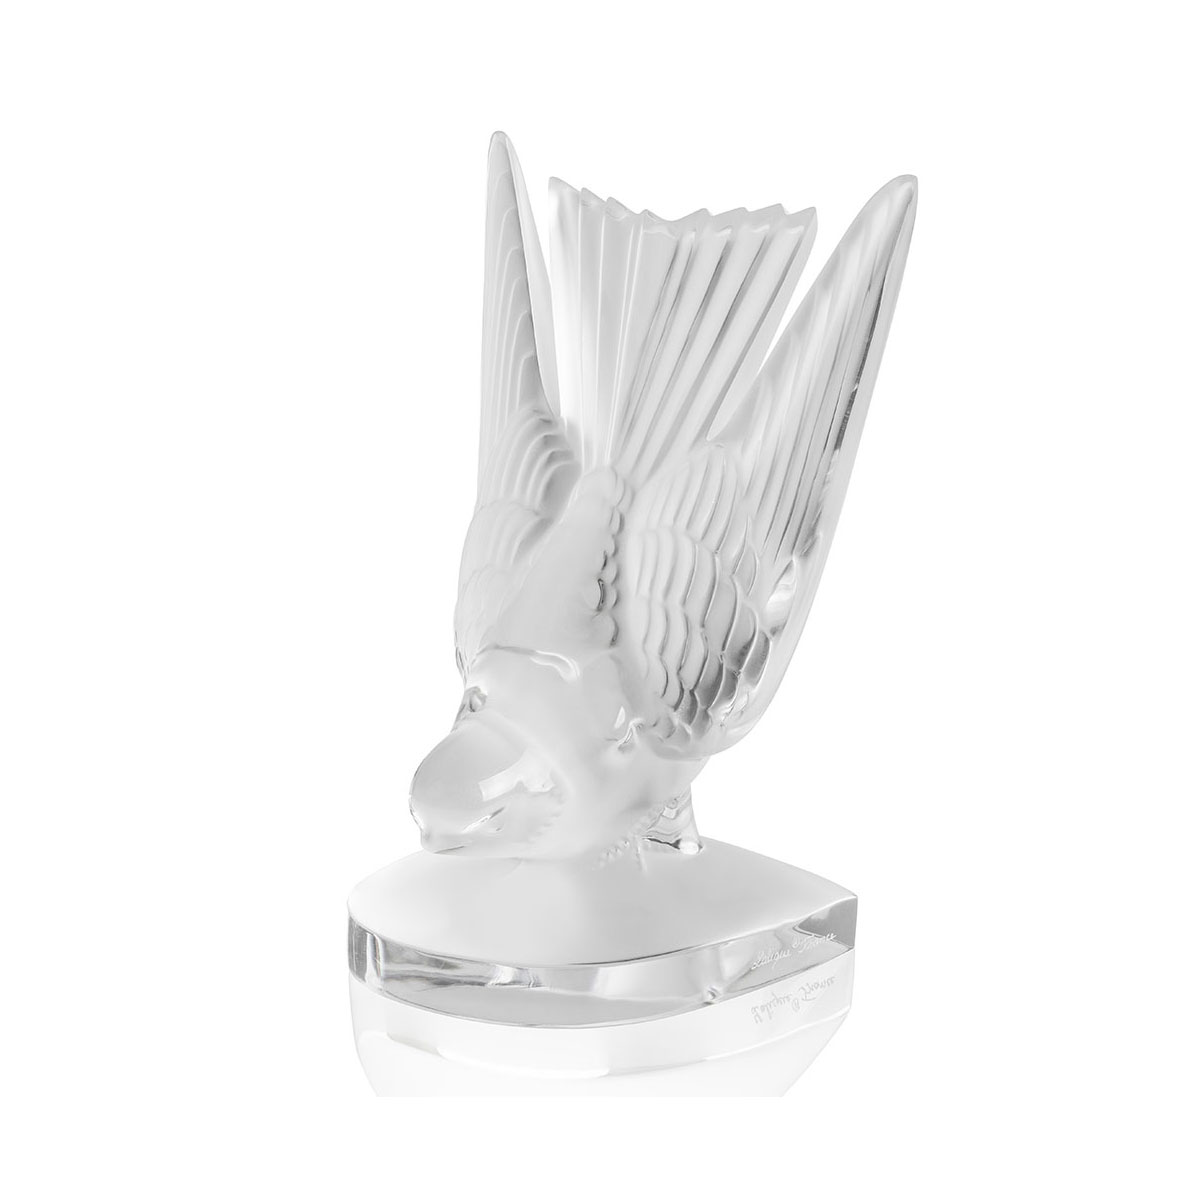 Lalique Hirondelle, Hirondelles, Swallows Paperweight, Clear